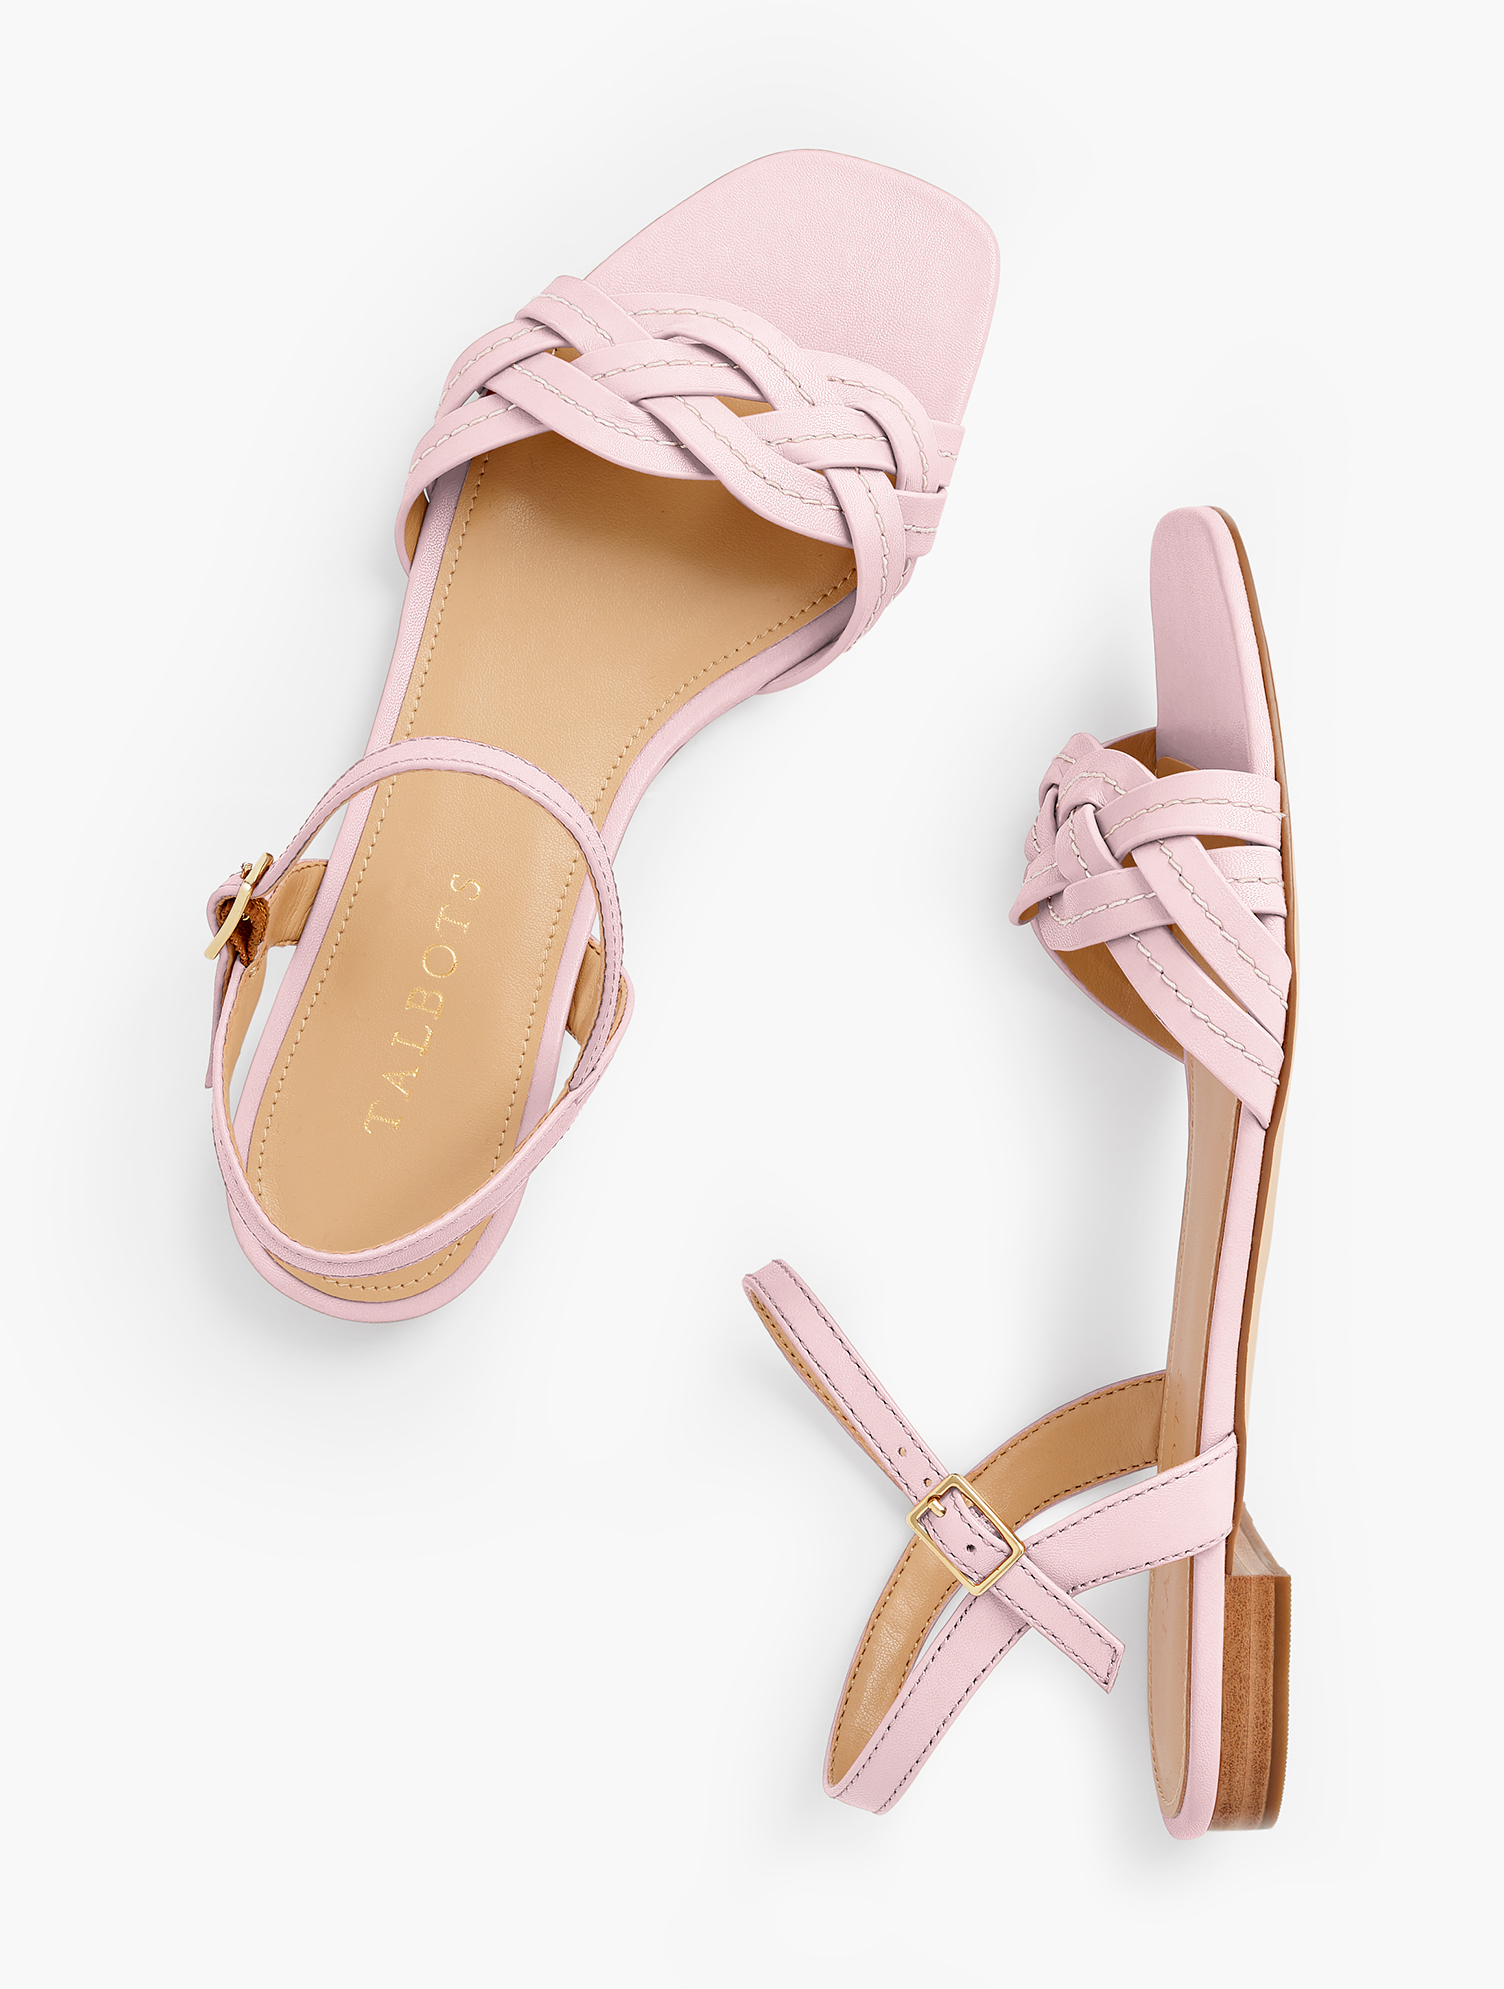 Our Violet braided sandals. Featuring an on-trend square footbed. In a variety of colors so you don\\\'t have to choose just one. Features 1/2 inches heelSquare ToeFlexible Non Skid Sole3Mm Memory Foam FootbedImported Material: 100% Leather Violet Braided Flat Sandals - Coral Buff - 9M Talbots